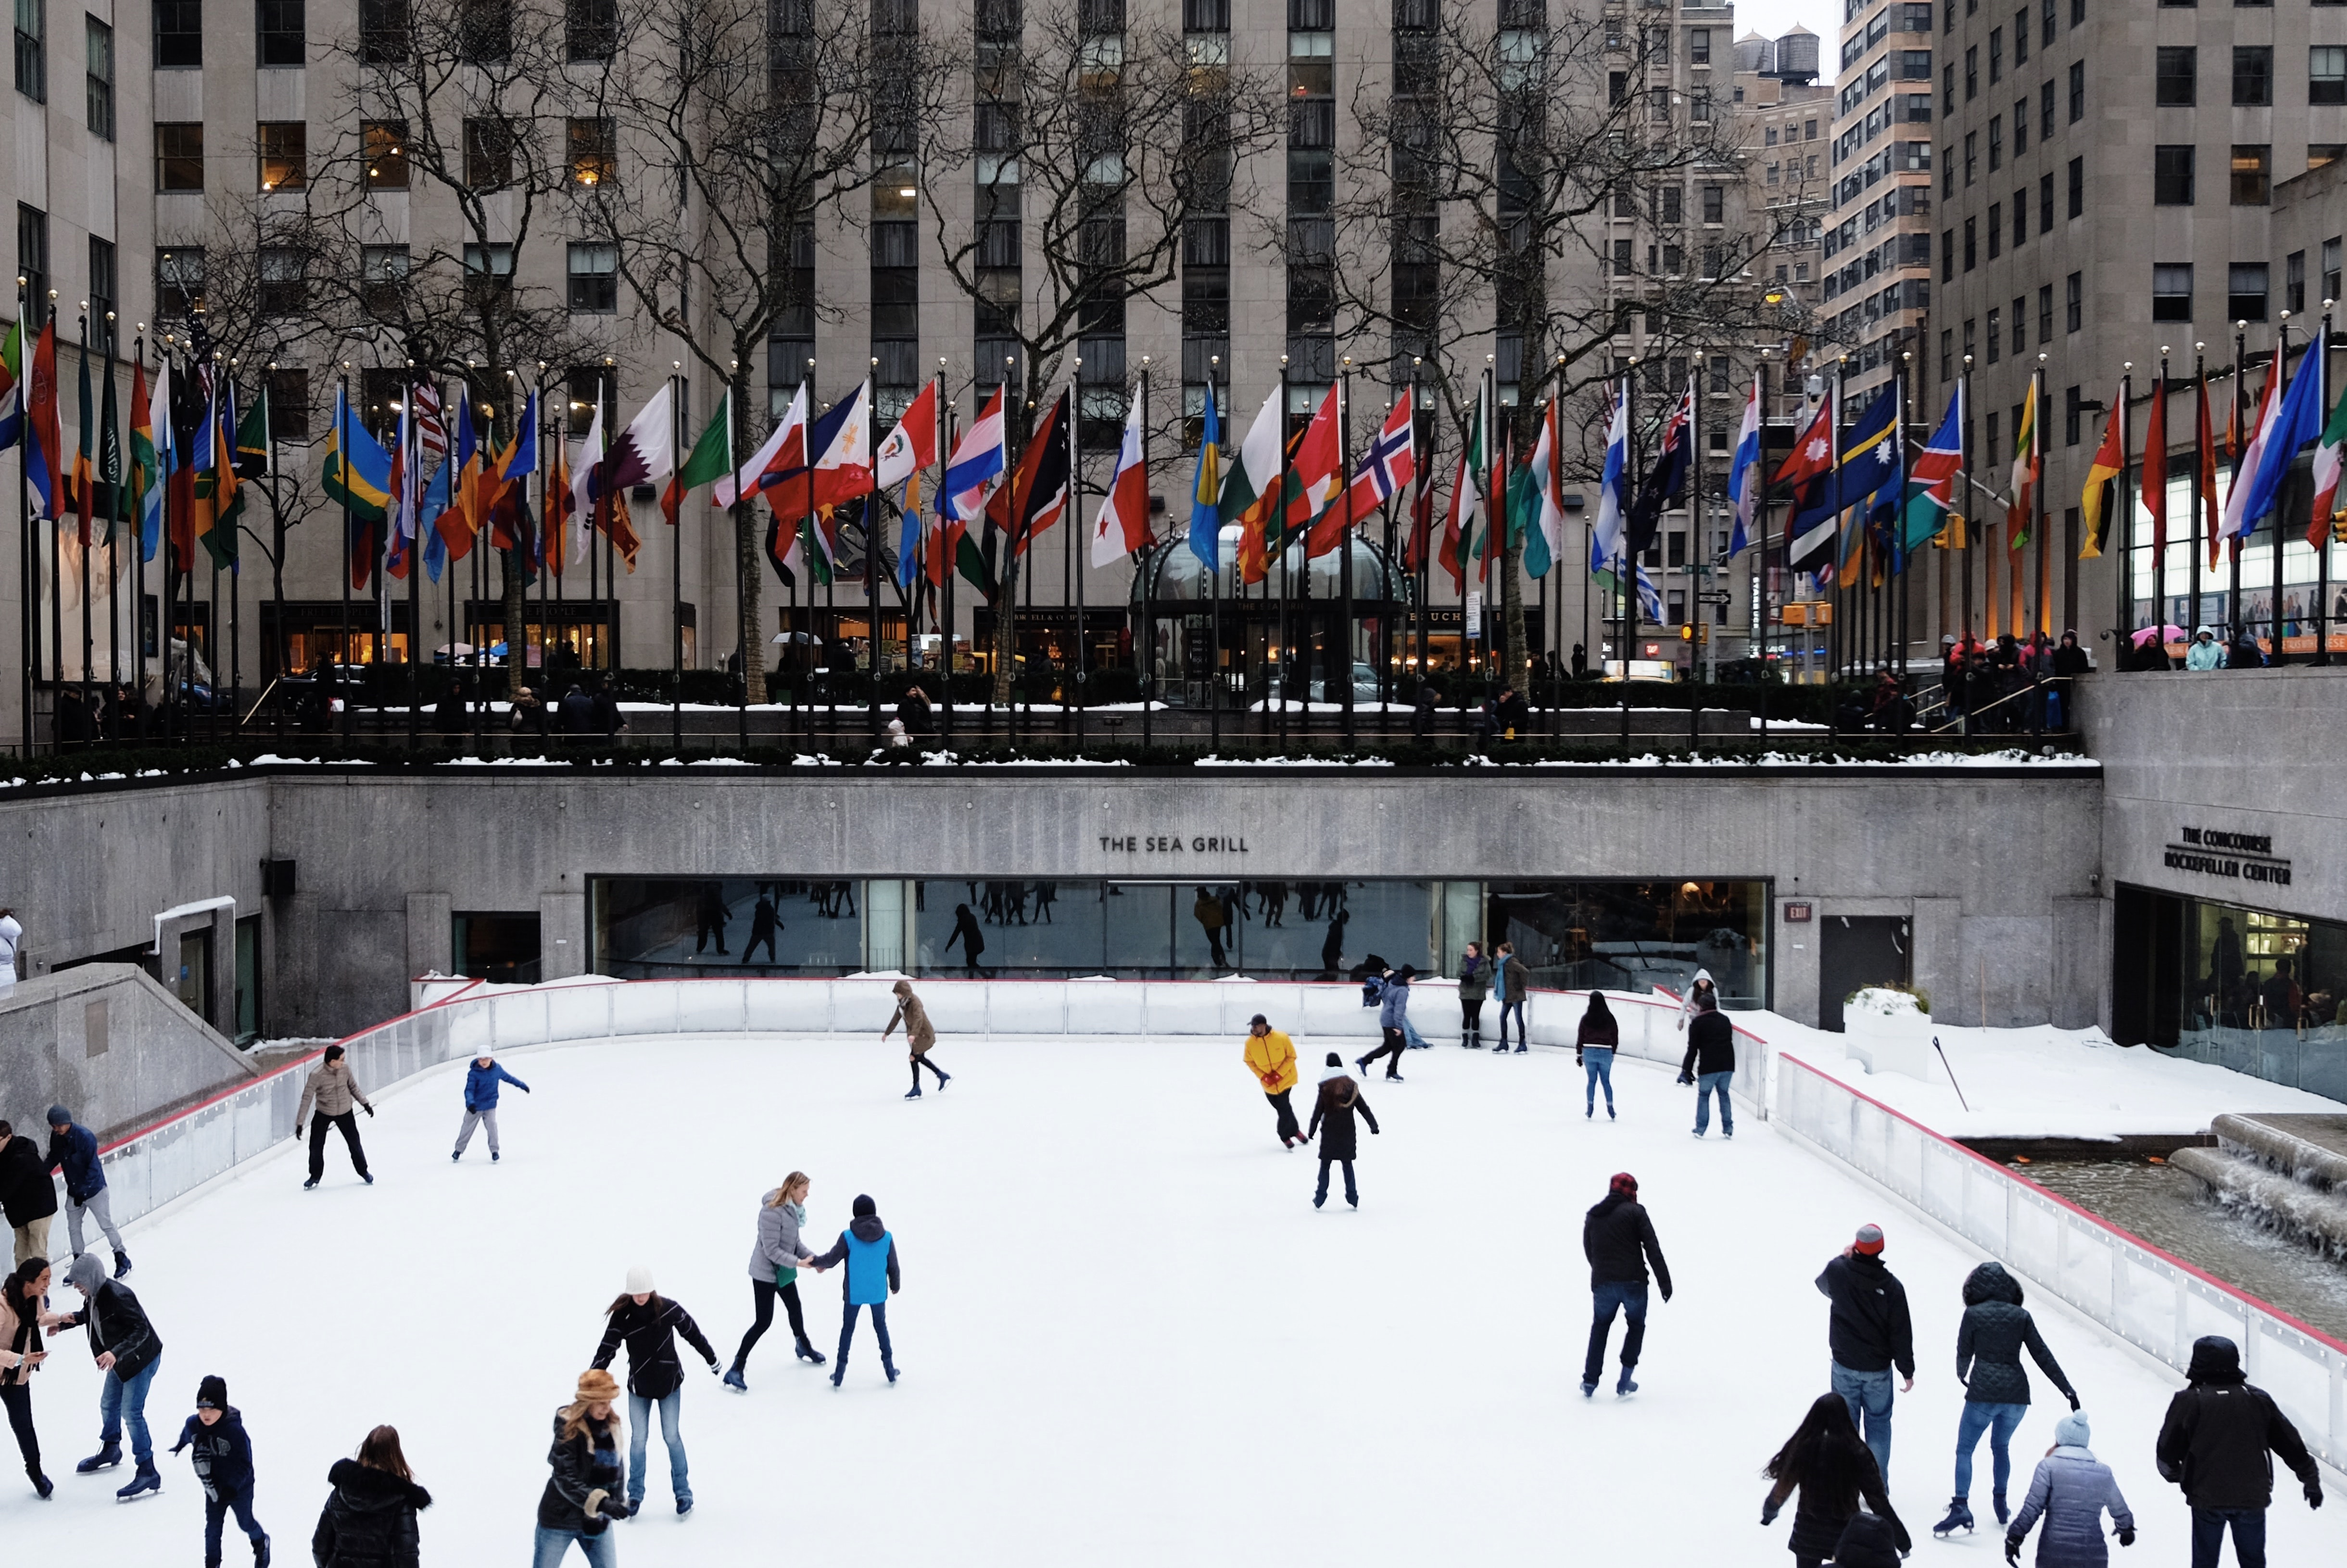 people ice skating on field surrounded by high-rise buildings